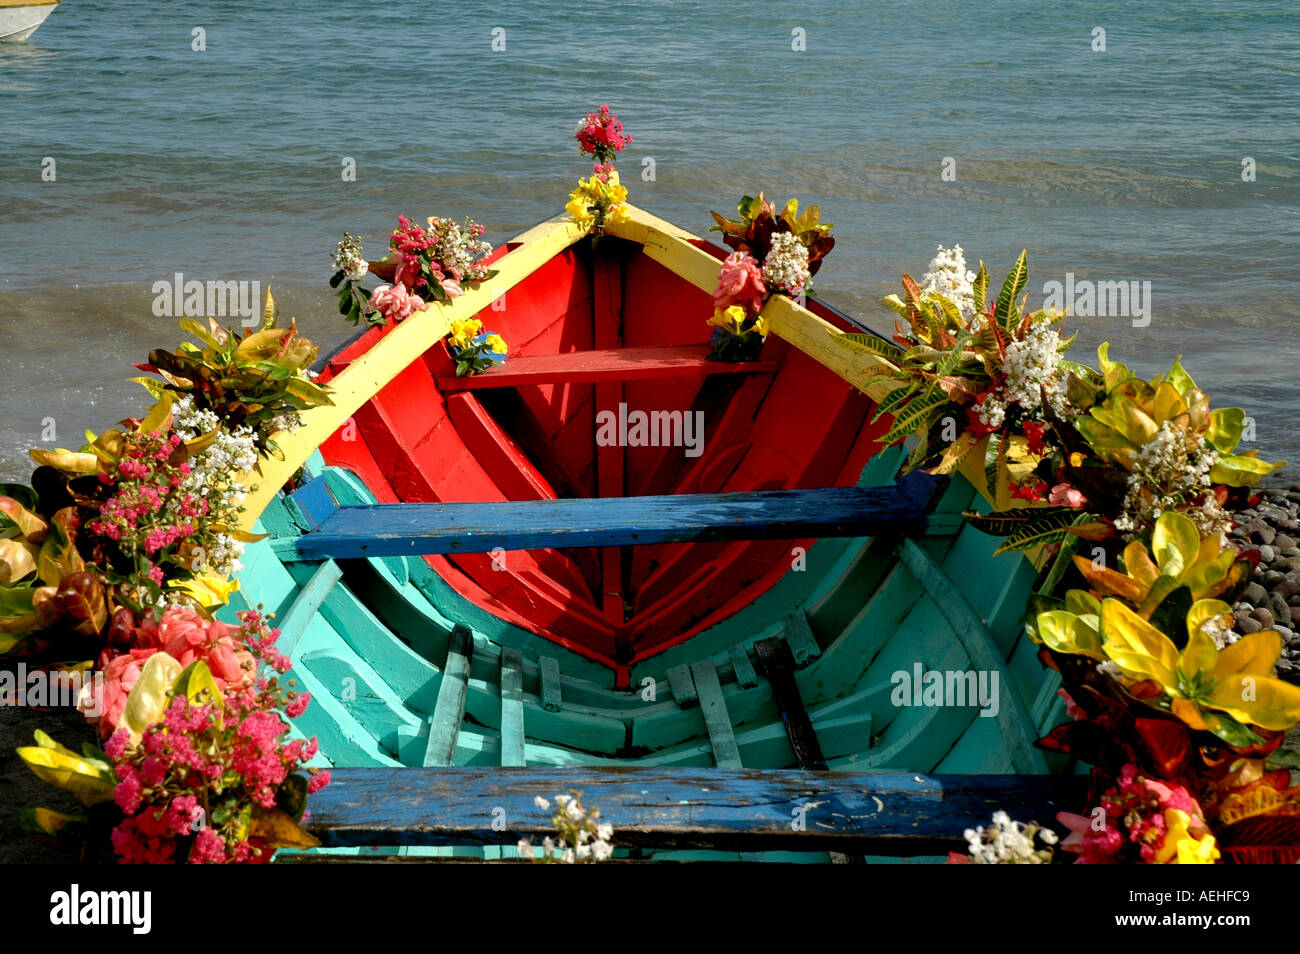 Grenada Caribbean Religious Festival Colorful Boat Decked With Stock